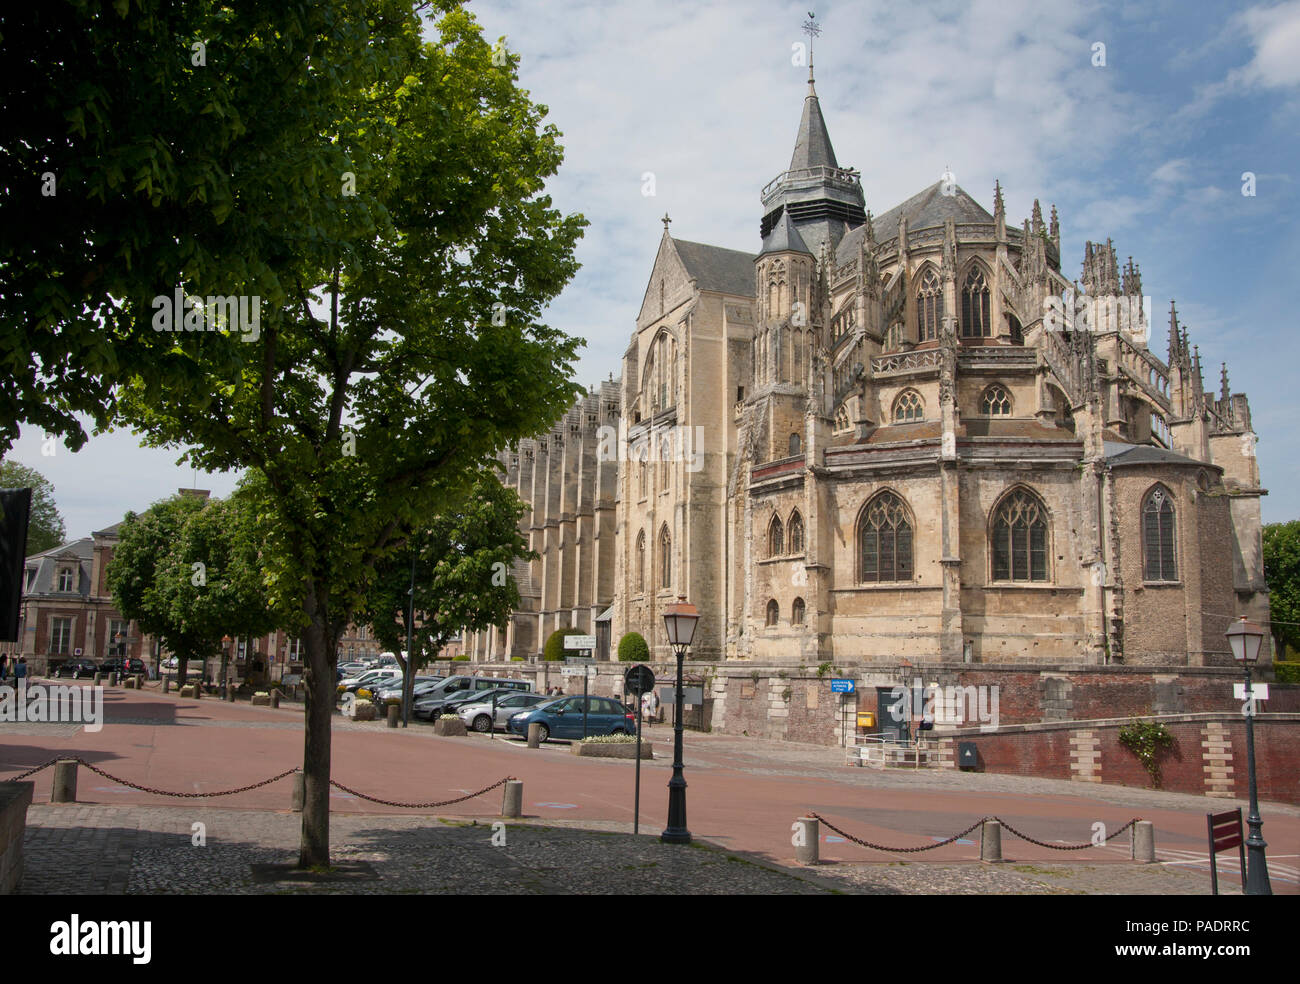 Norman gothic Eu Cathedral aka Collegiate church of Notre Dame c.1180 Eu, Seine Maritime, north Normandy, France - Stock Image